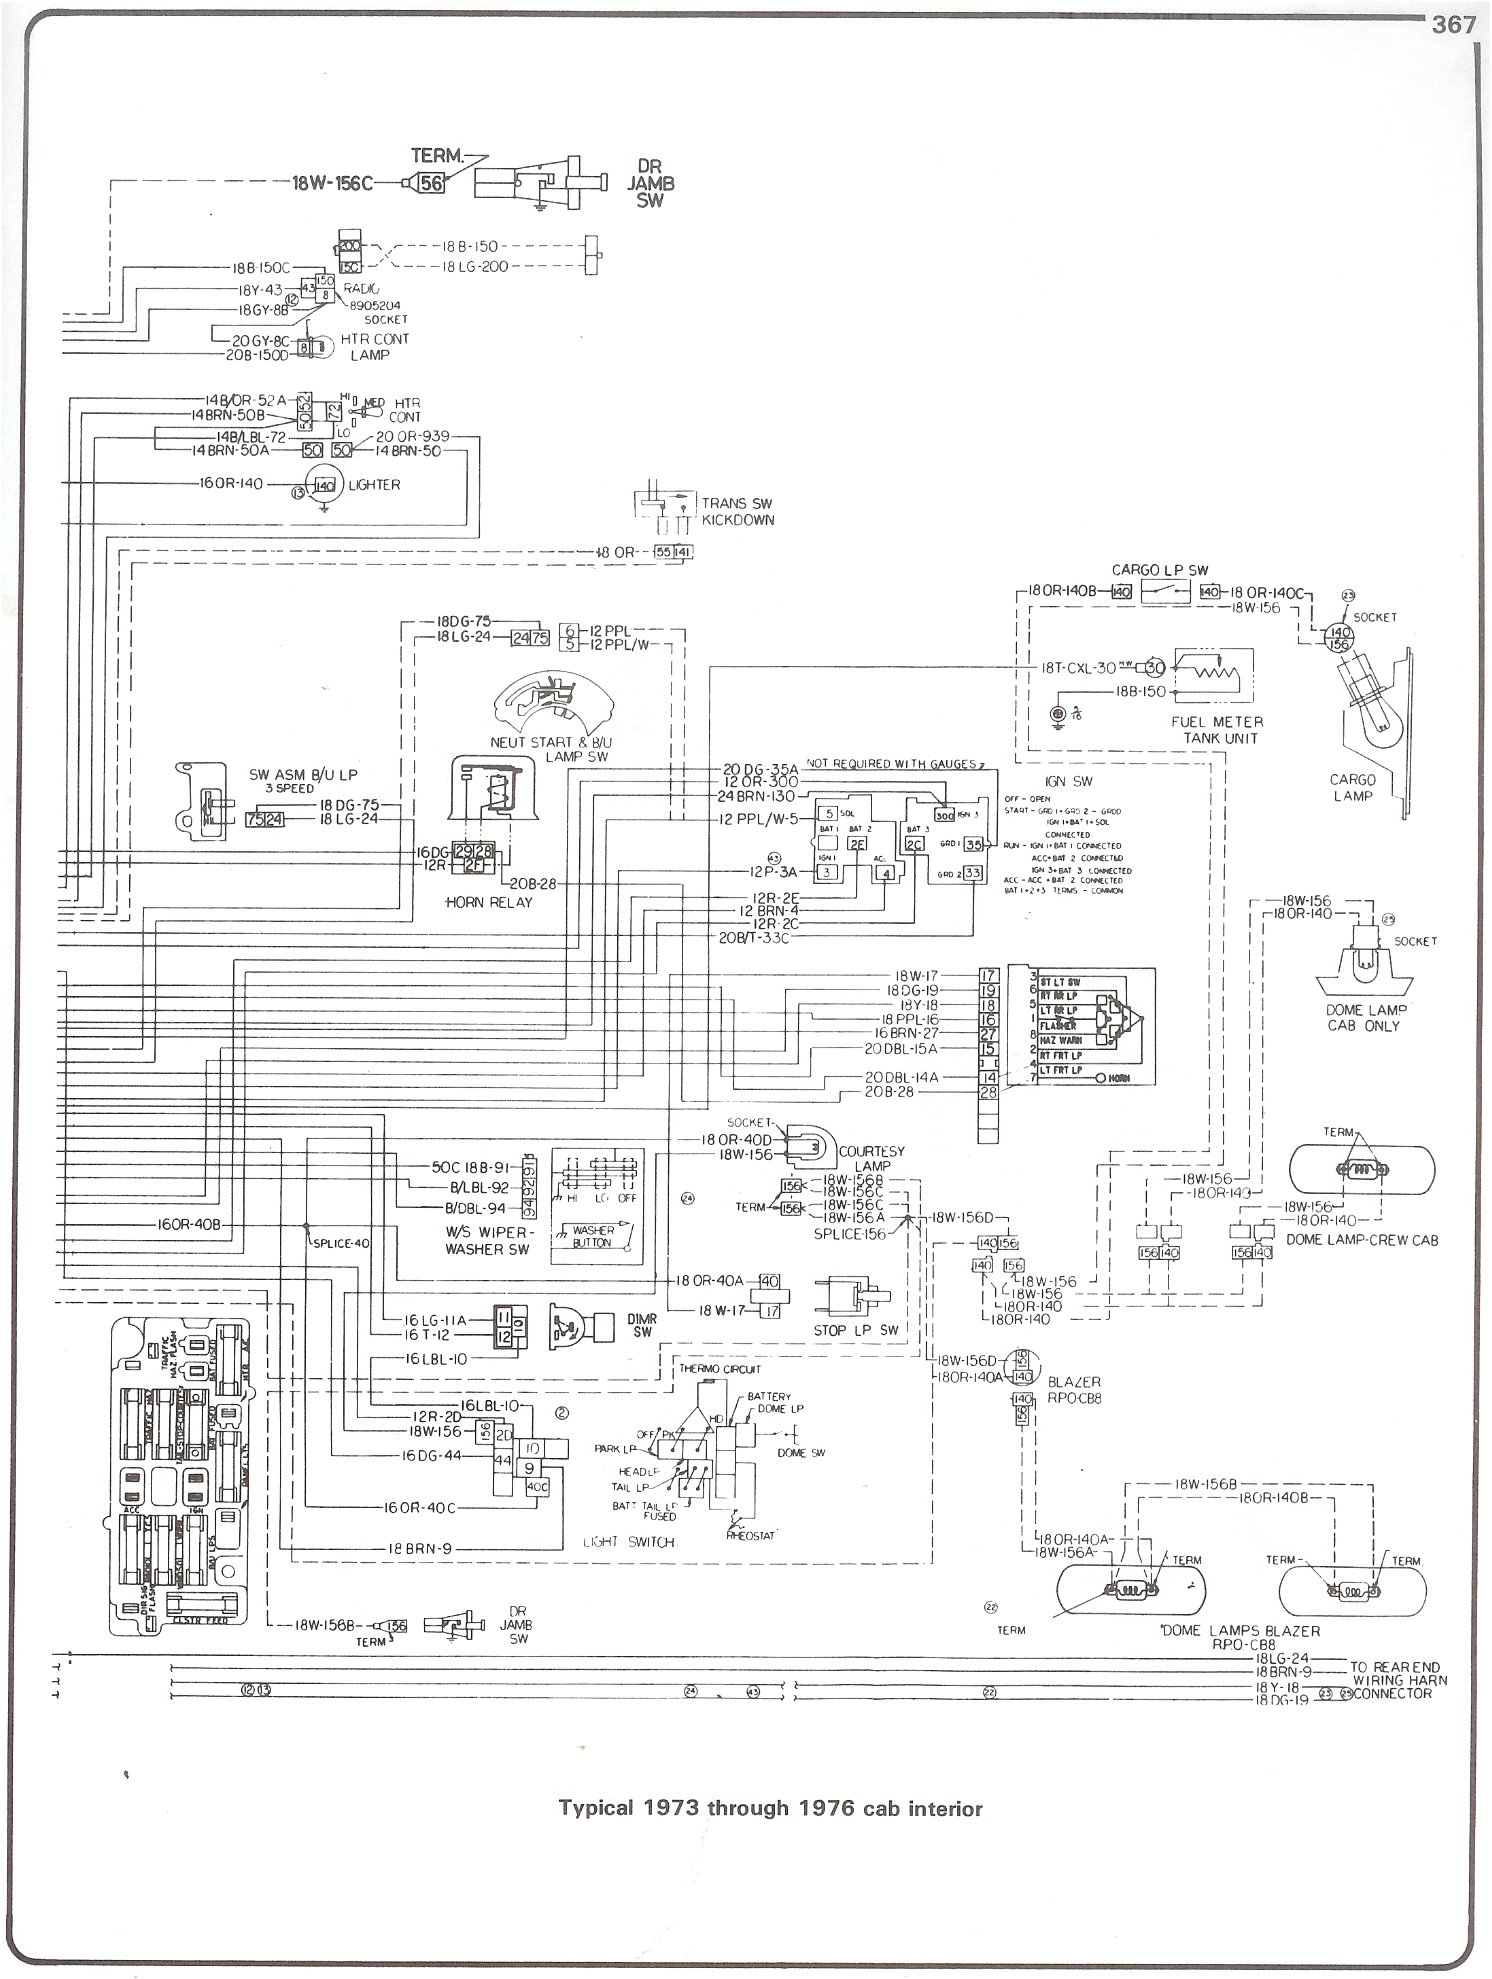 88 K1500 Fuse Block Wiring Diagram Complete 73 87 Wiring Diagrams